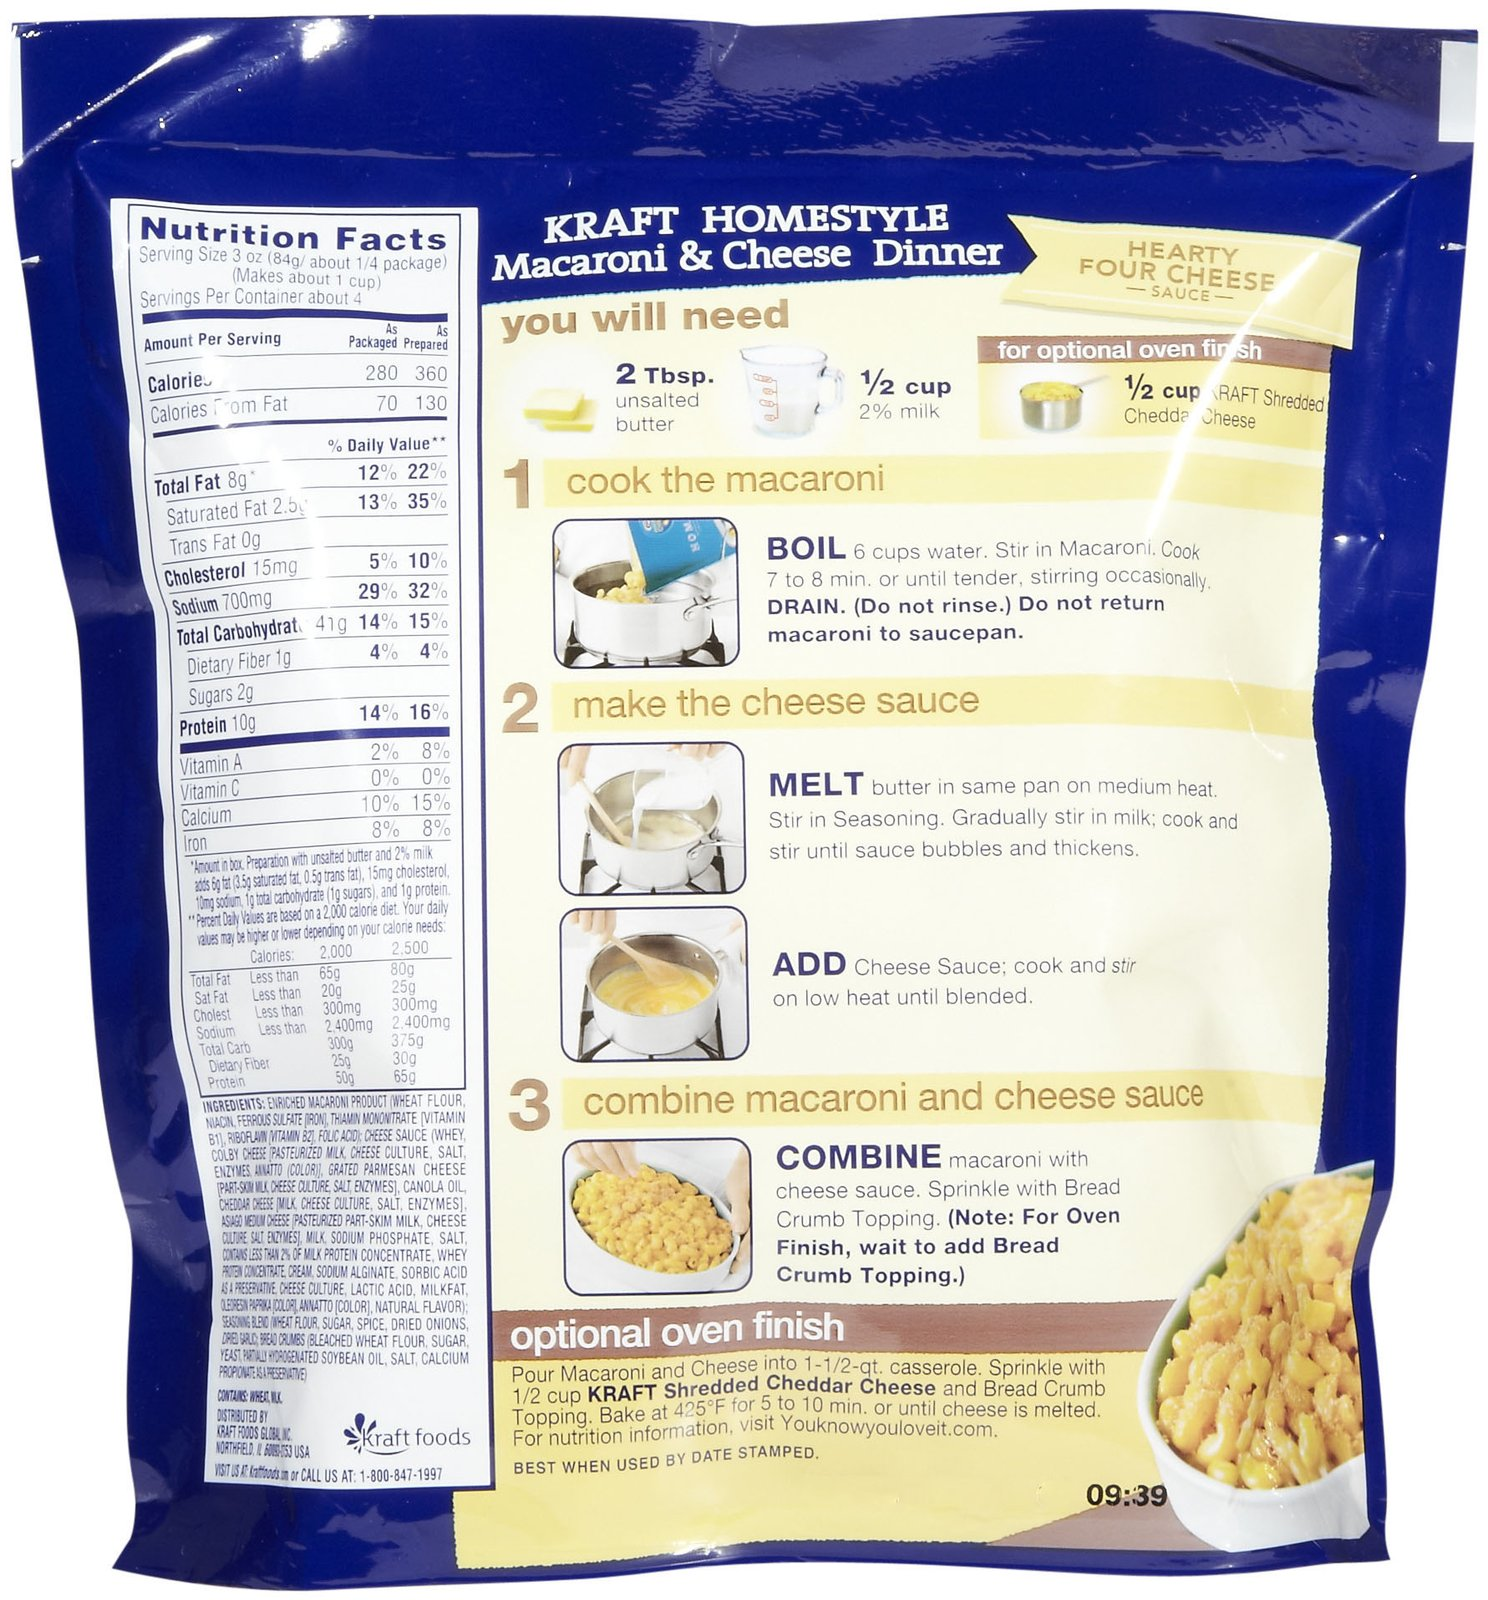 an introduction to kraft macaroni and cheese Making your own macaroni and cheese would be the best idea, and would let you buy higher quality ingredients than you would find in the ready-made kits from kraft or velveeta you'll want to select a good brand of pasta, and then make sure that the cheese you get is very mild, avoiding the sharp cheddar and heavily processed foods like.